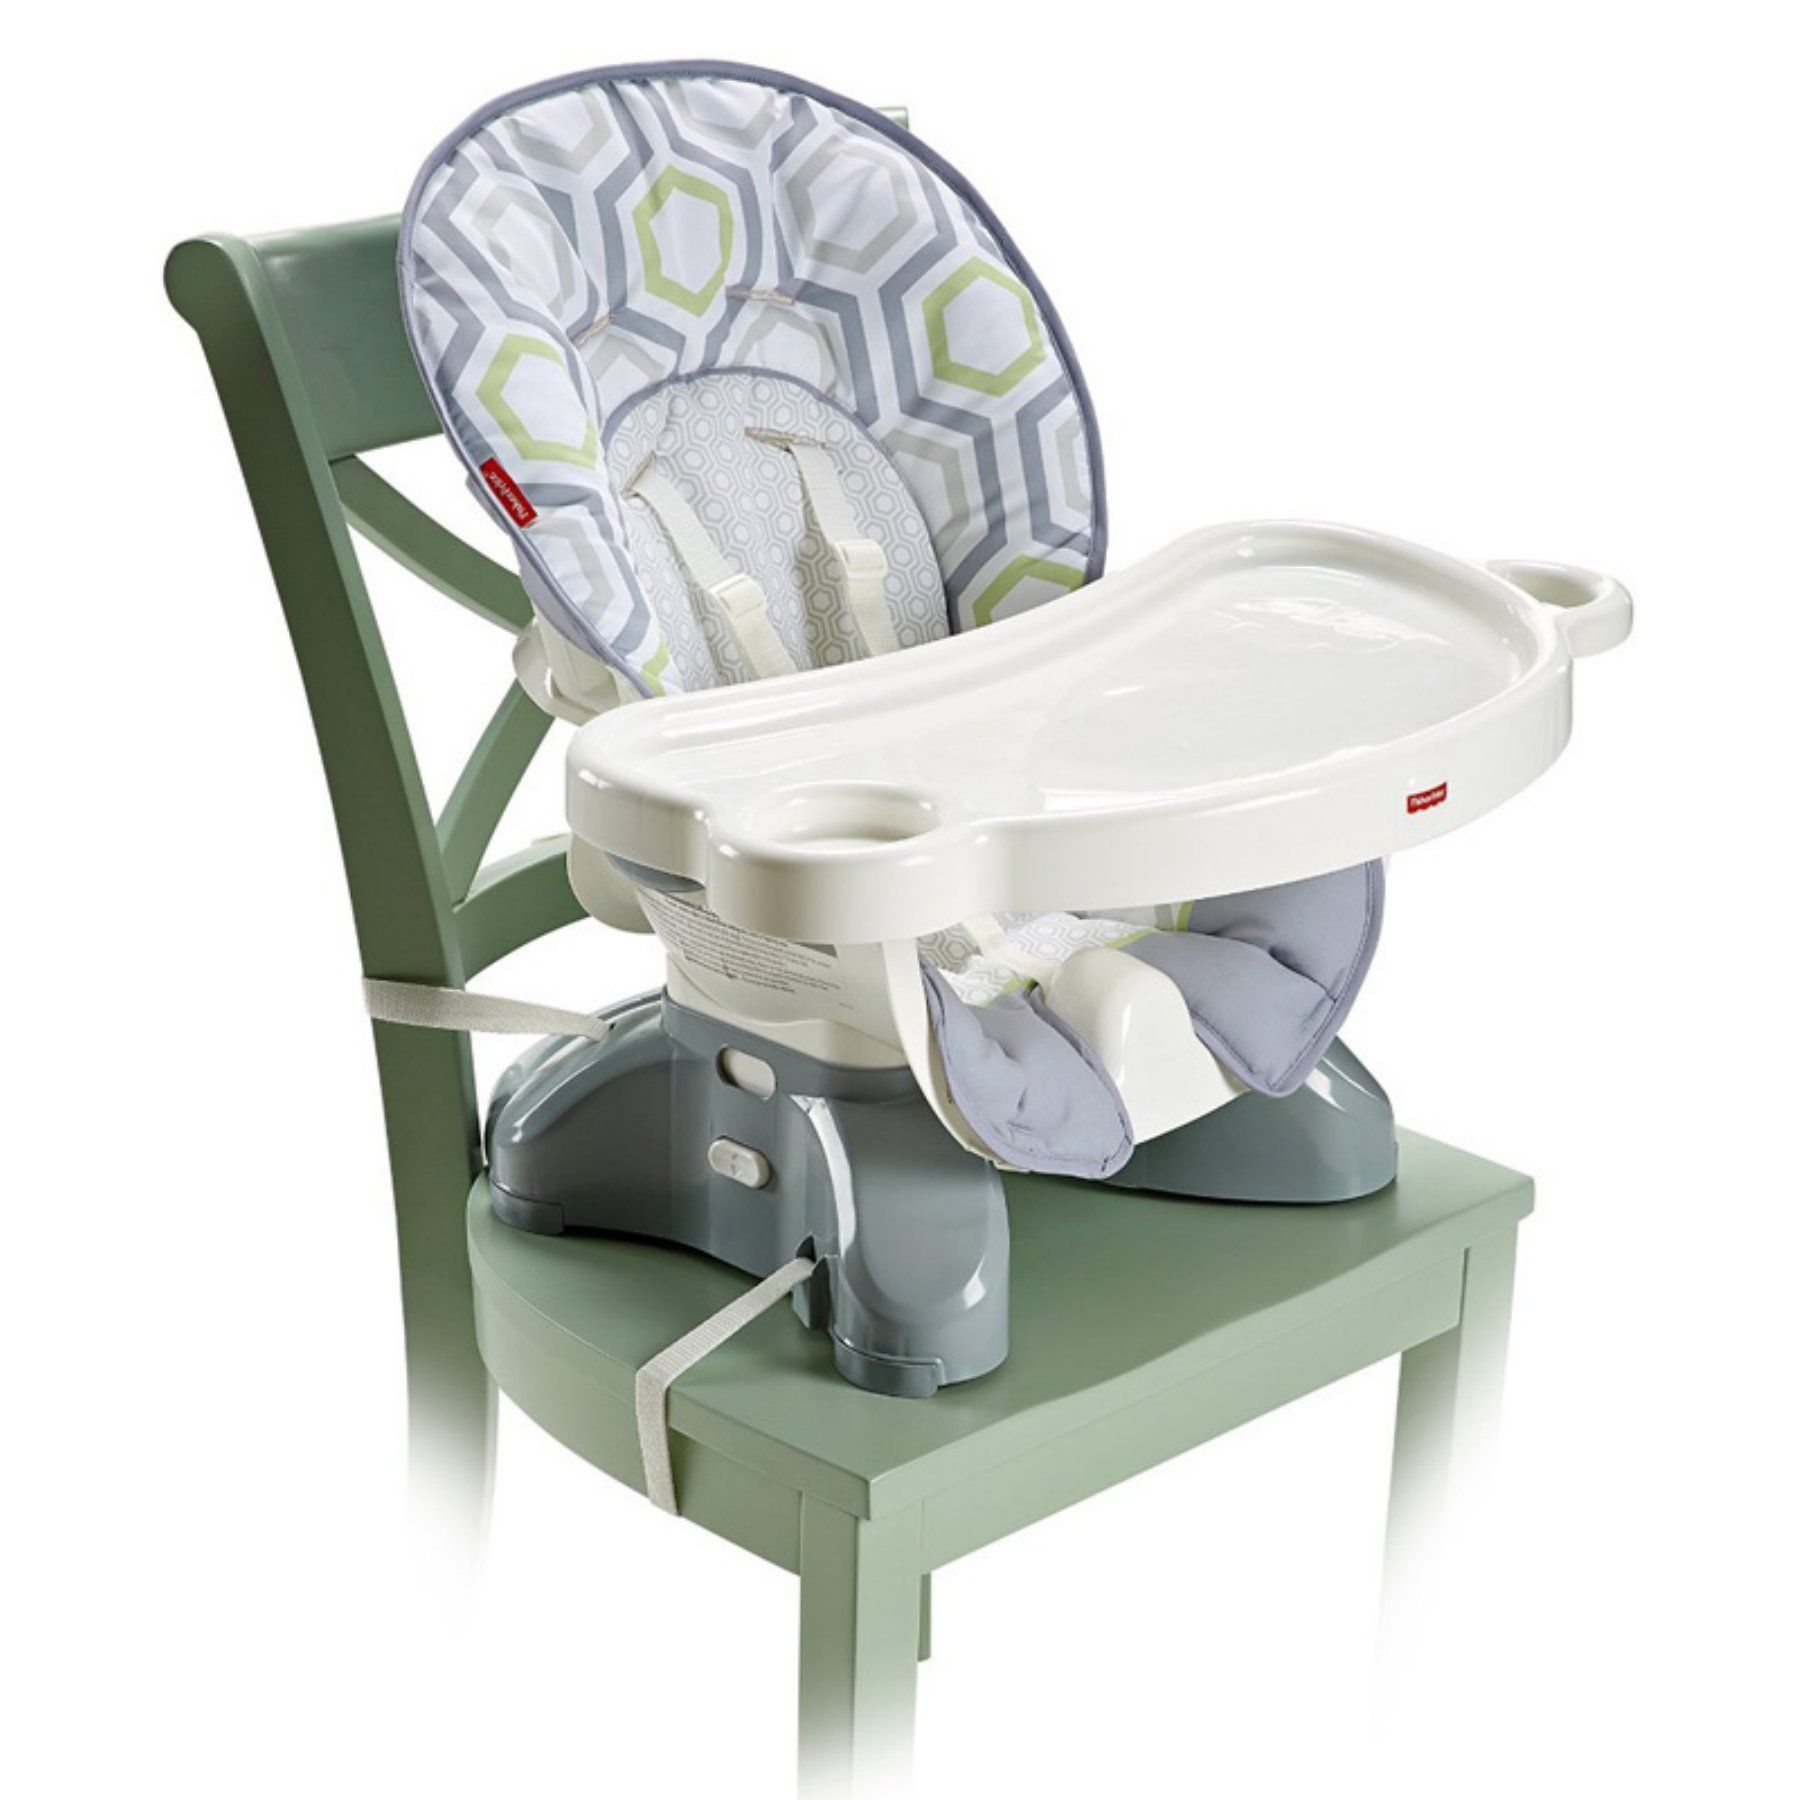 Fisher Price SpaceSaver High Chair Geo Meadow DKR70